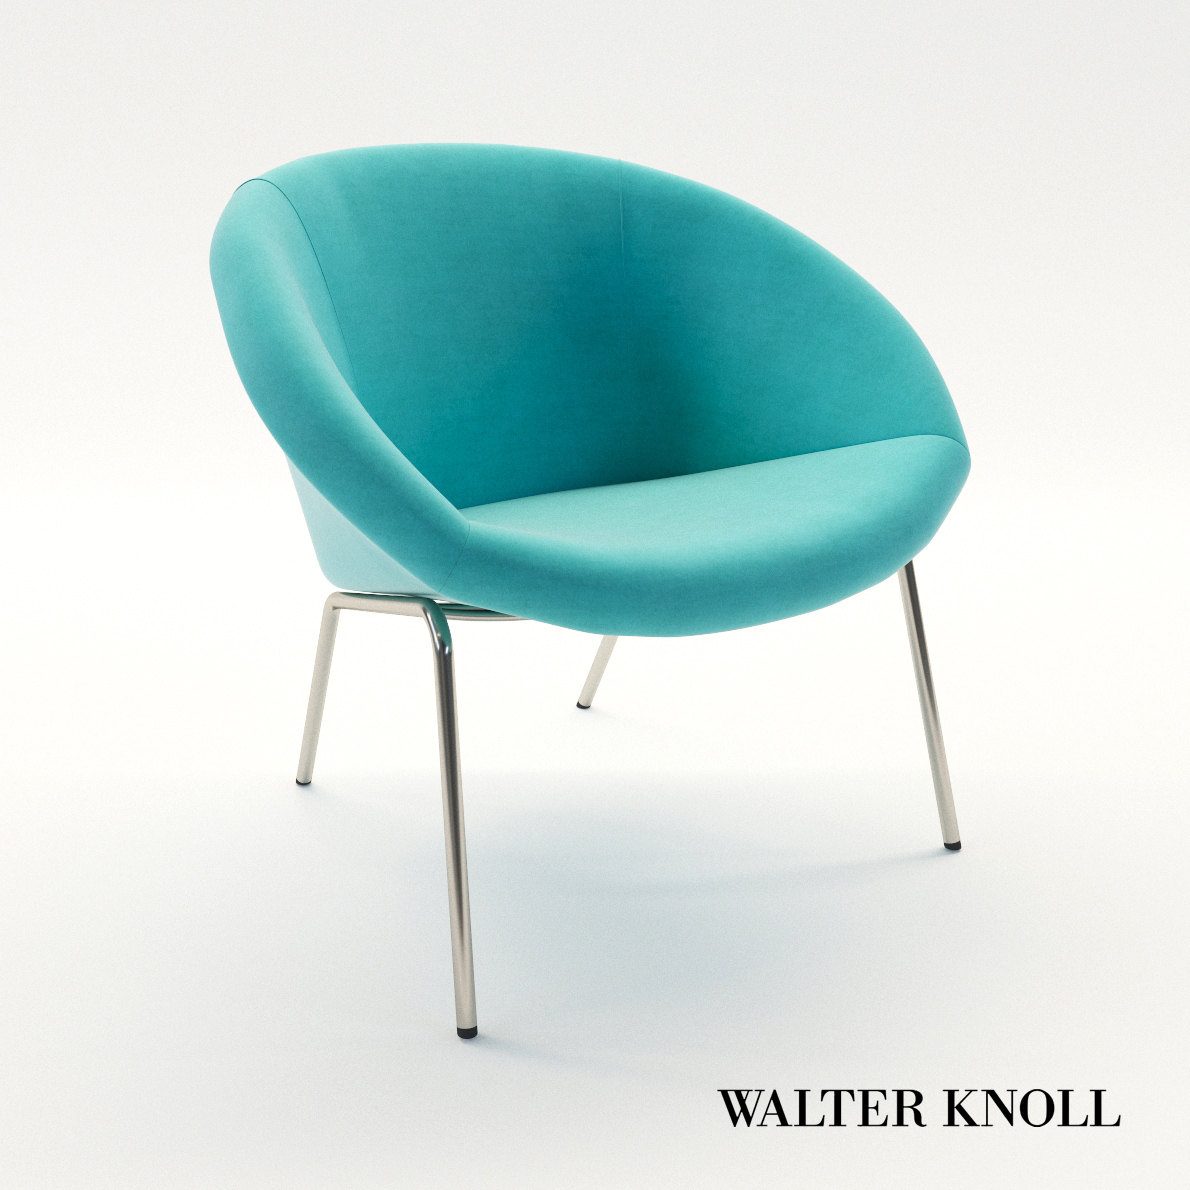 3d model Chair 369 – Design by Walter Knoll Team